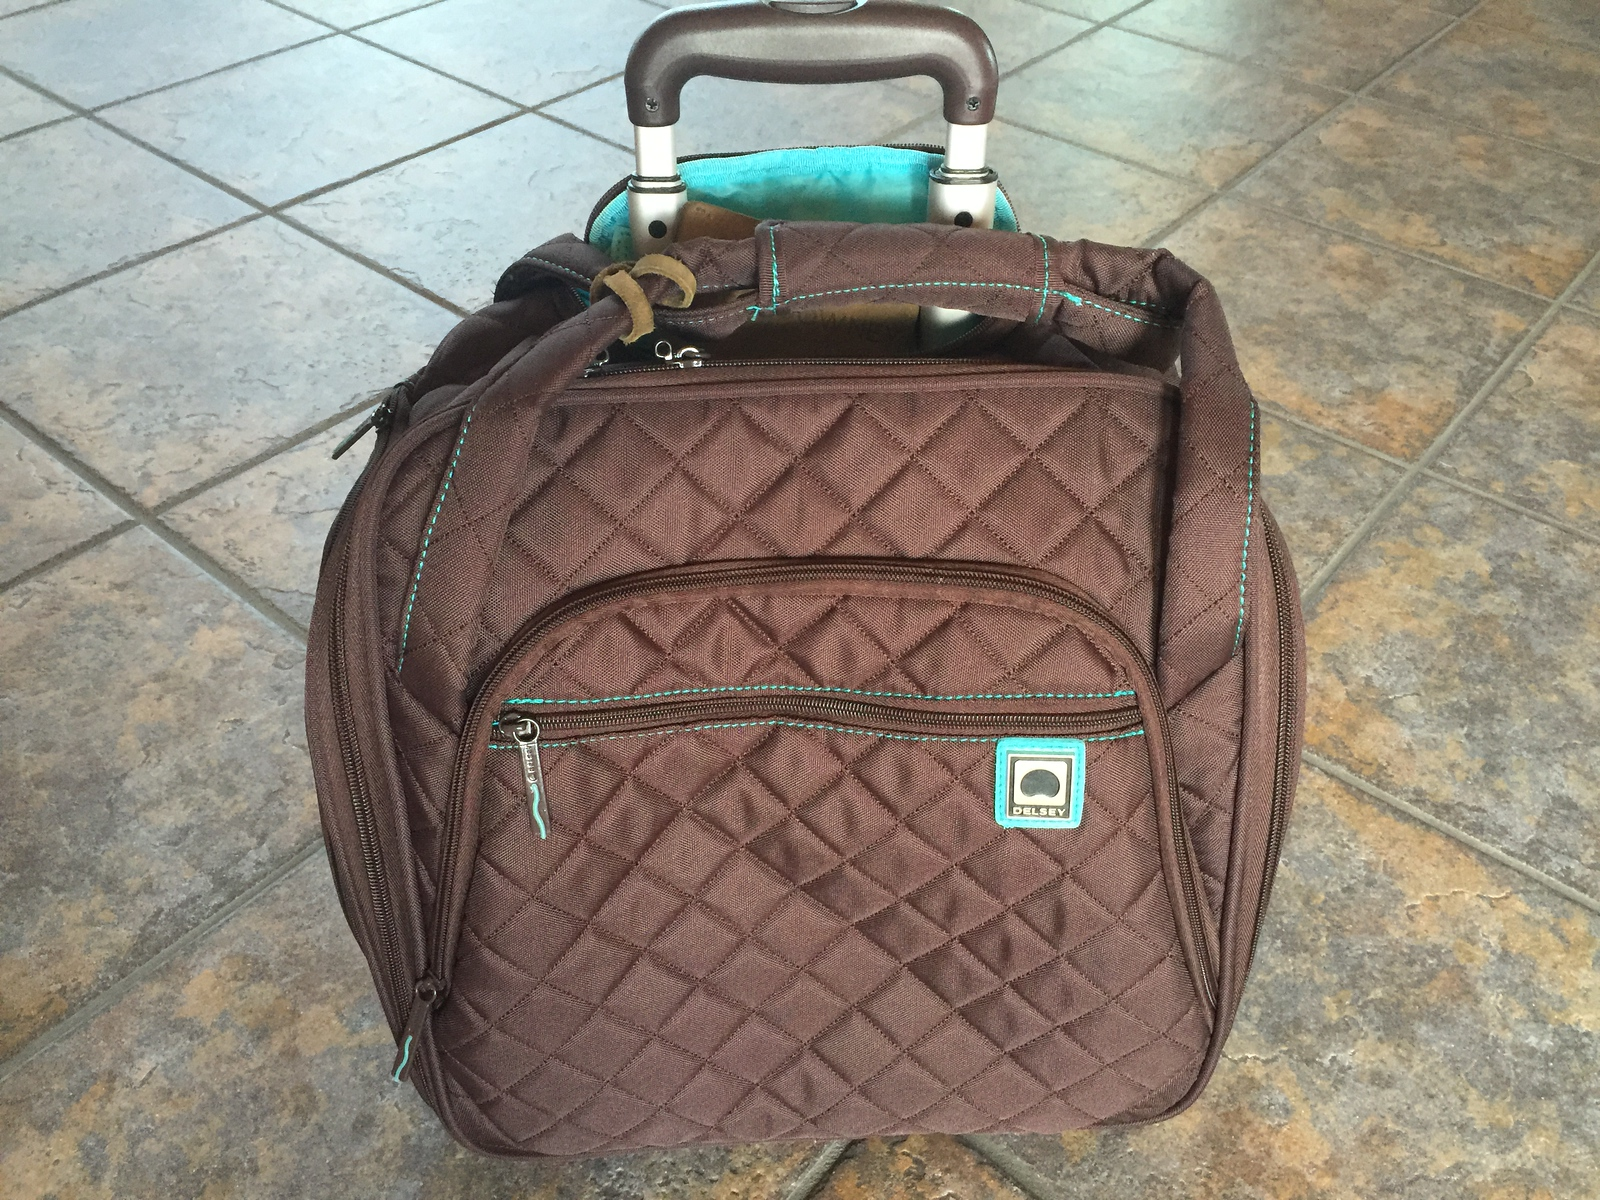 Delsey Quilted Rolling UnderSeat Tote is lightweight and fits easily under airplane seats.